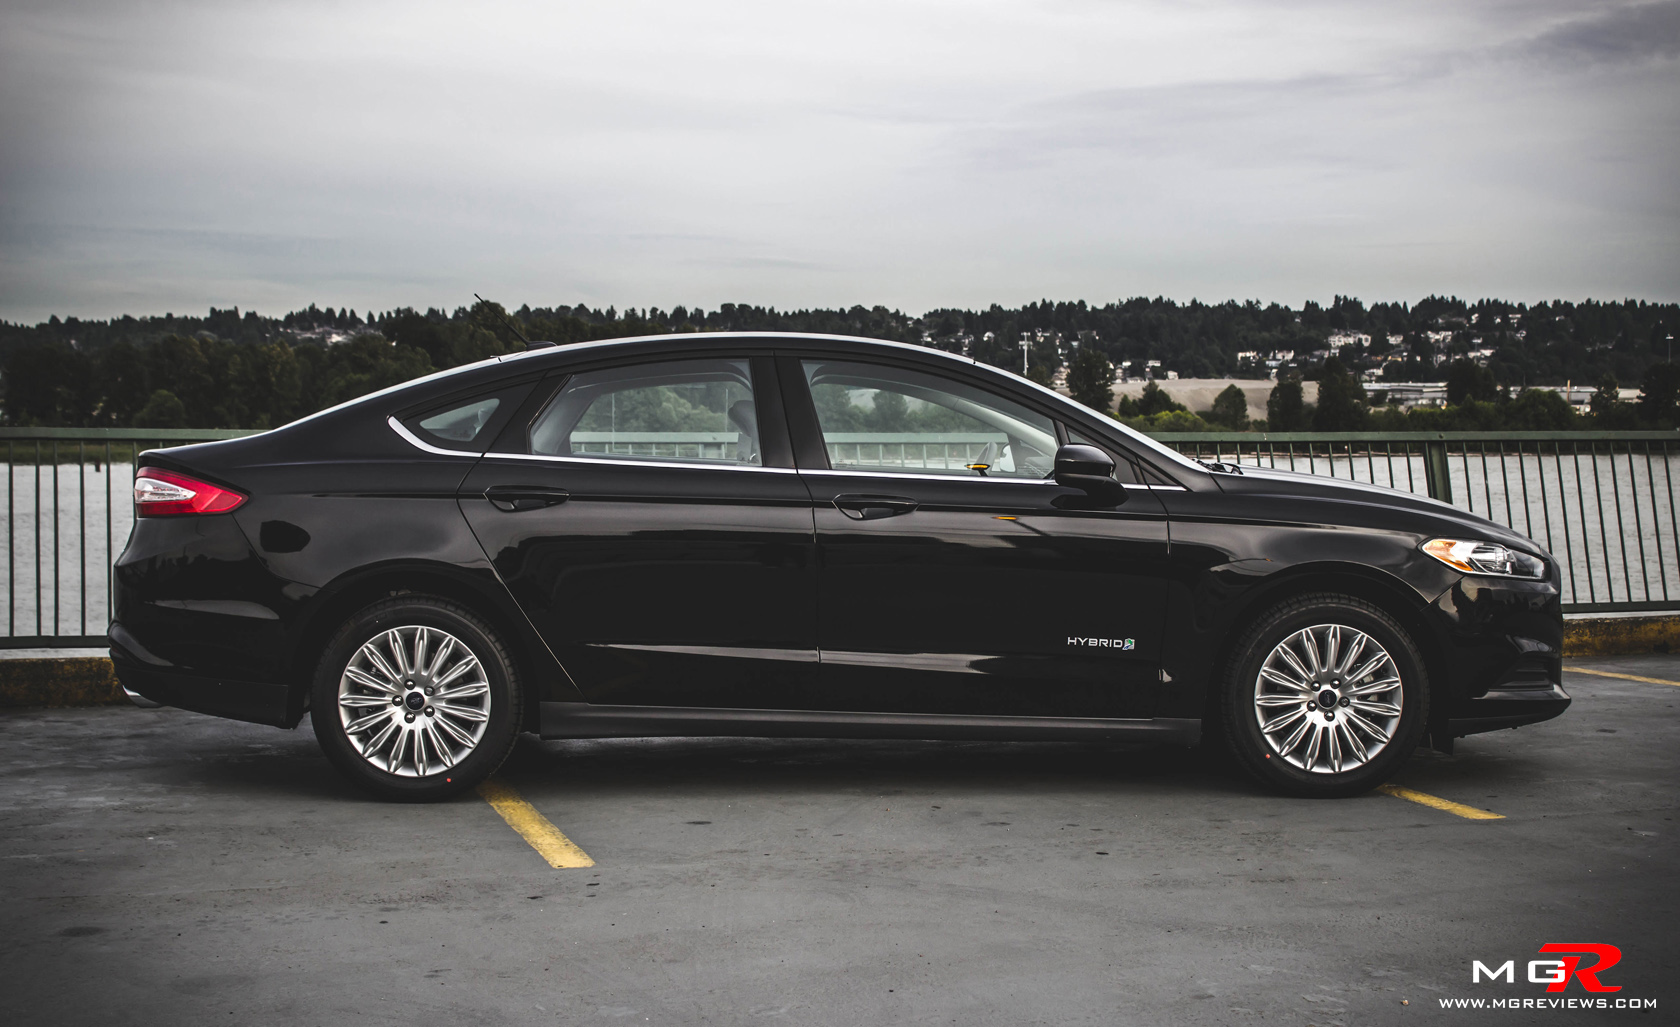 Car Lease Vancouver >> Review: 2014 Ford Fusion Hybrid – M.G.Reviews